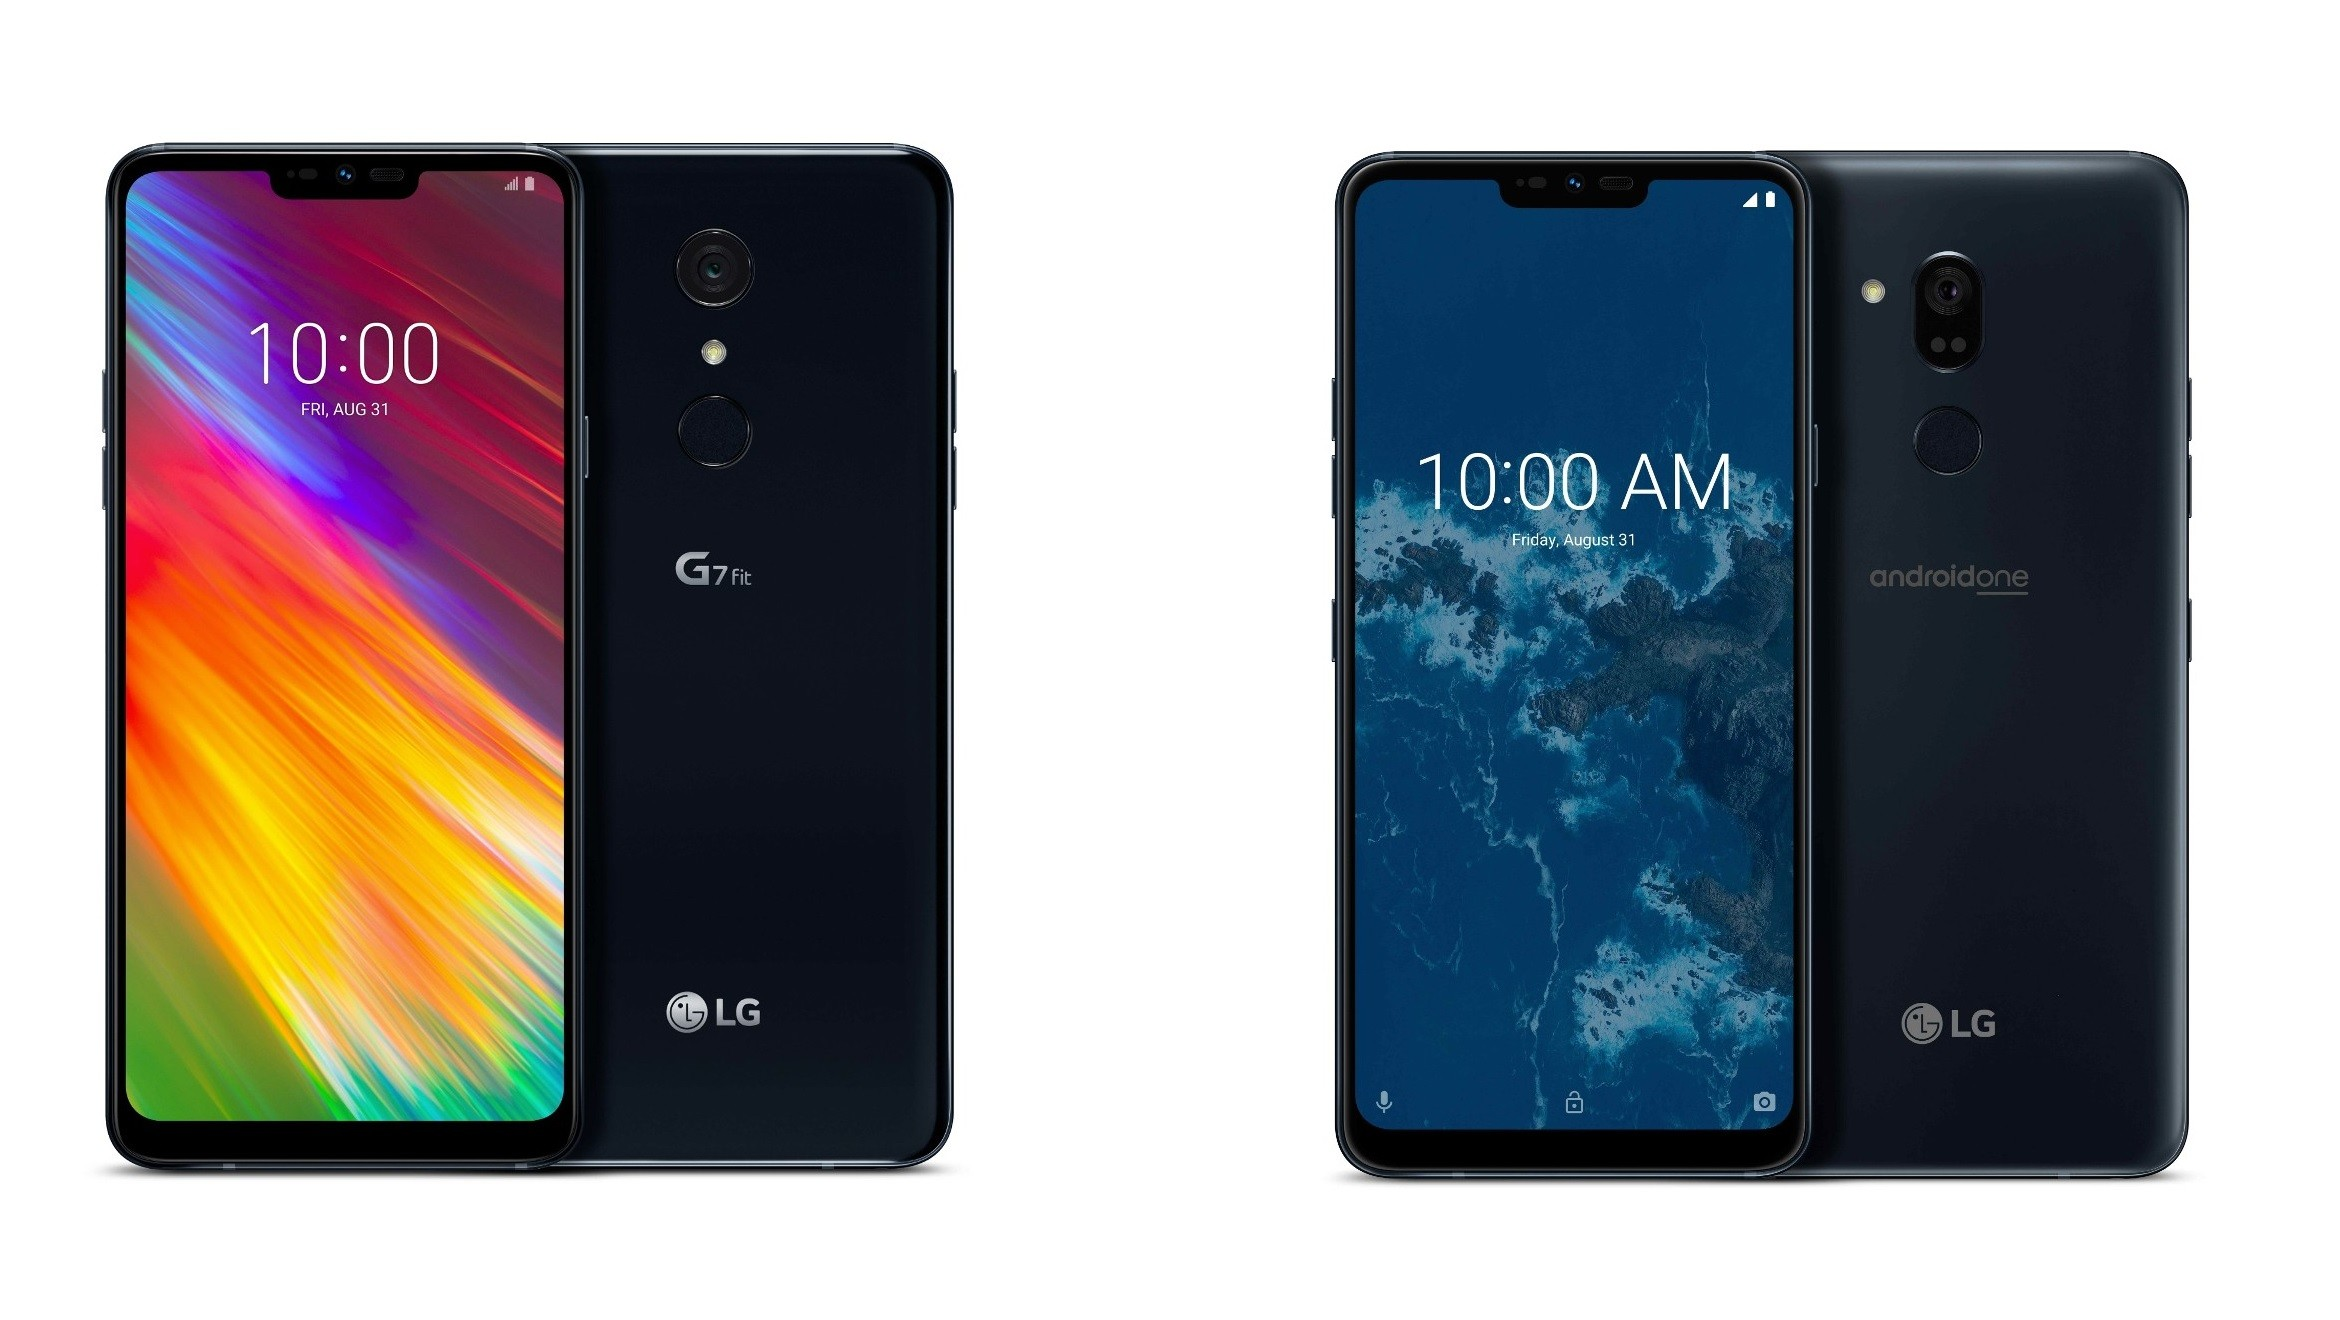 lg announces two new phones including its first android one handset